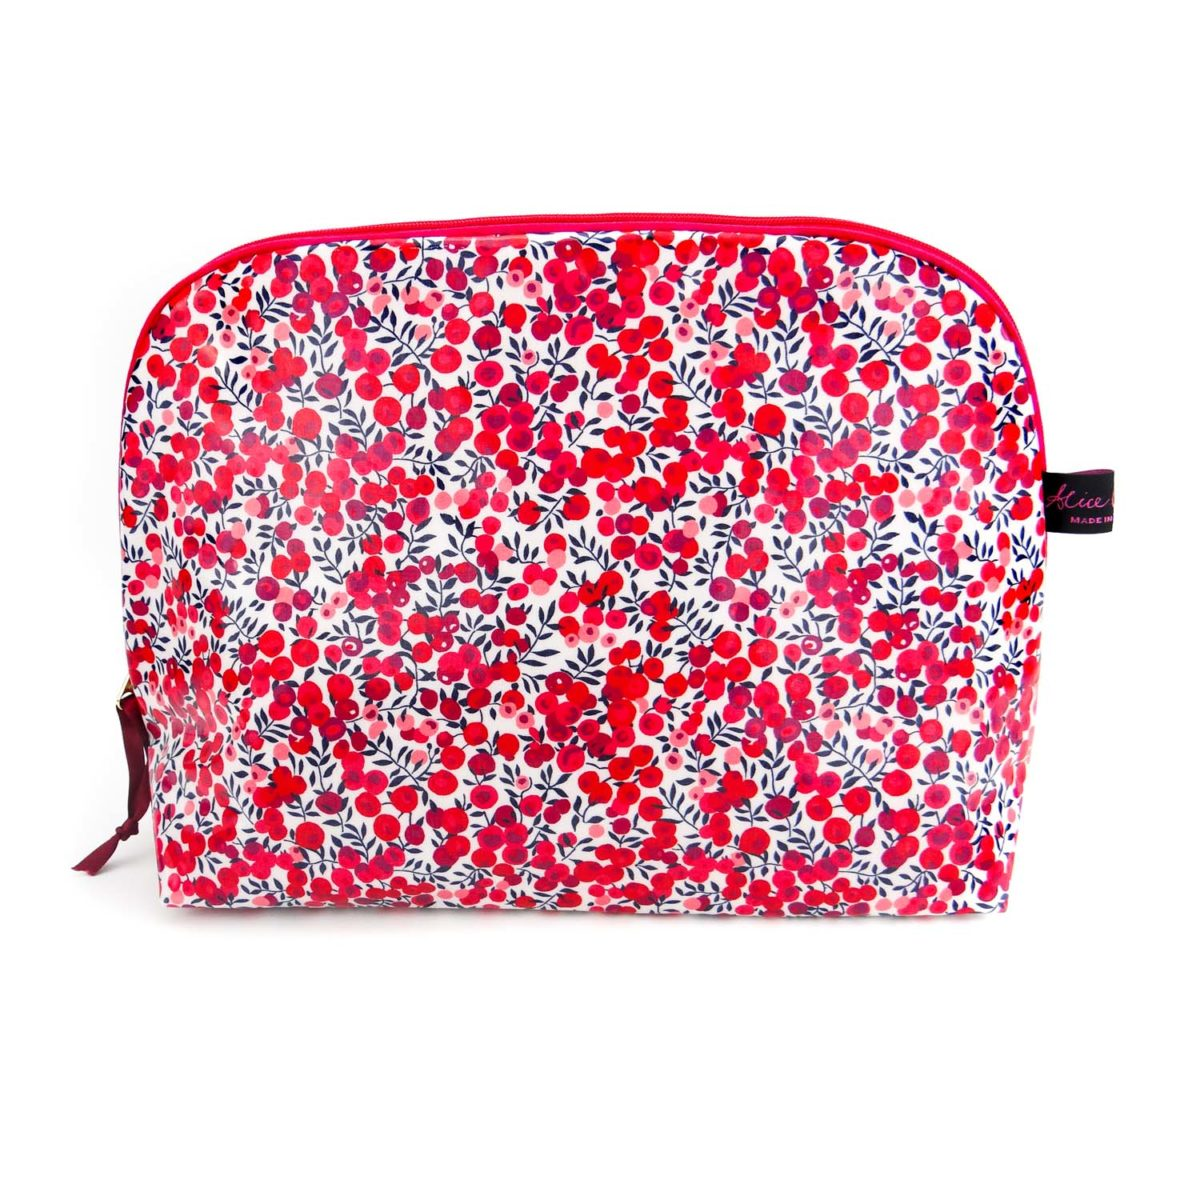 9e8c06073bf7 Large Round Top Wash Bag Archives - Alice Caroline - Liberty fabric ...